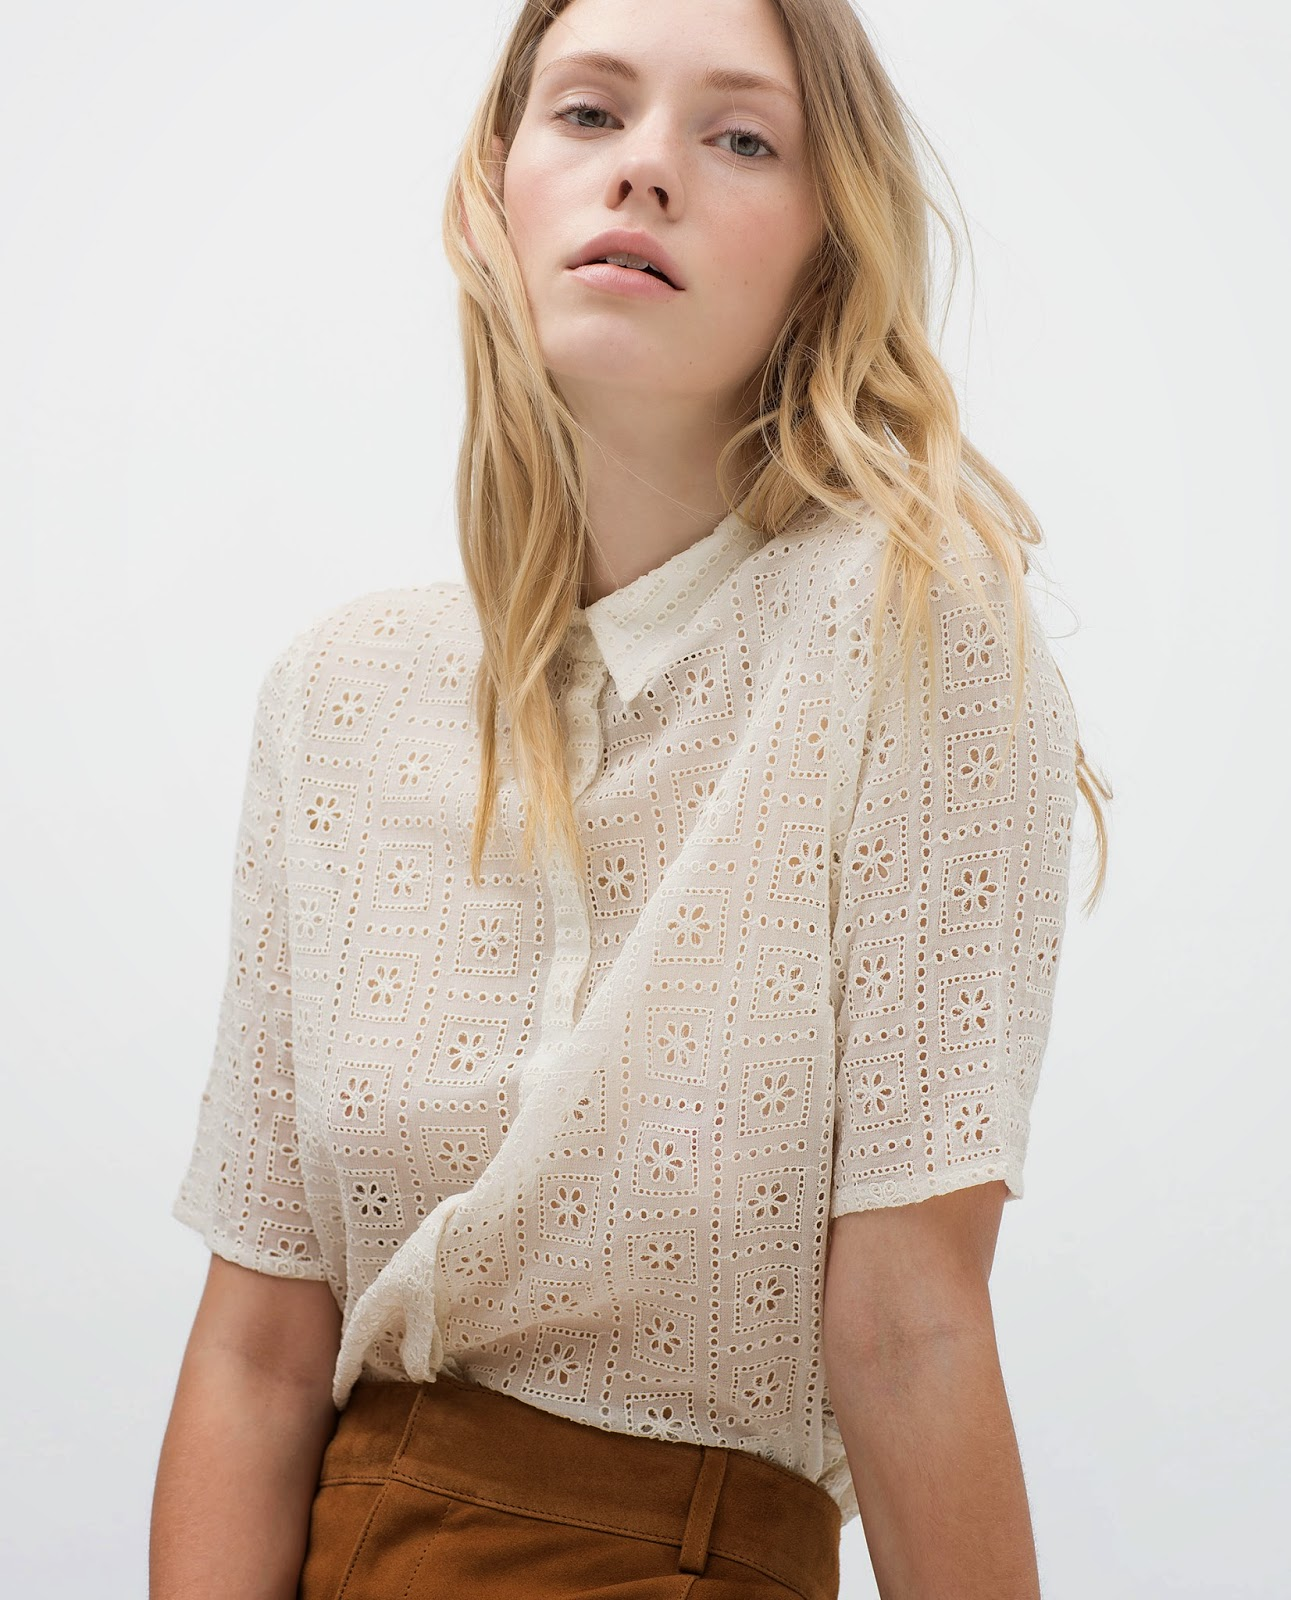 zara embroidered shirt,